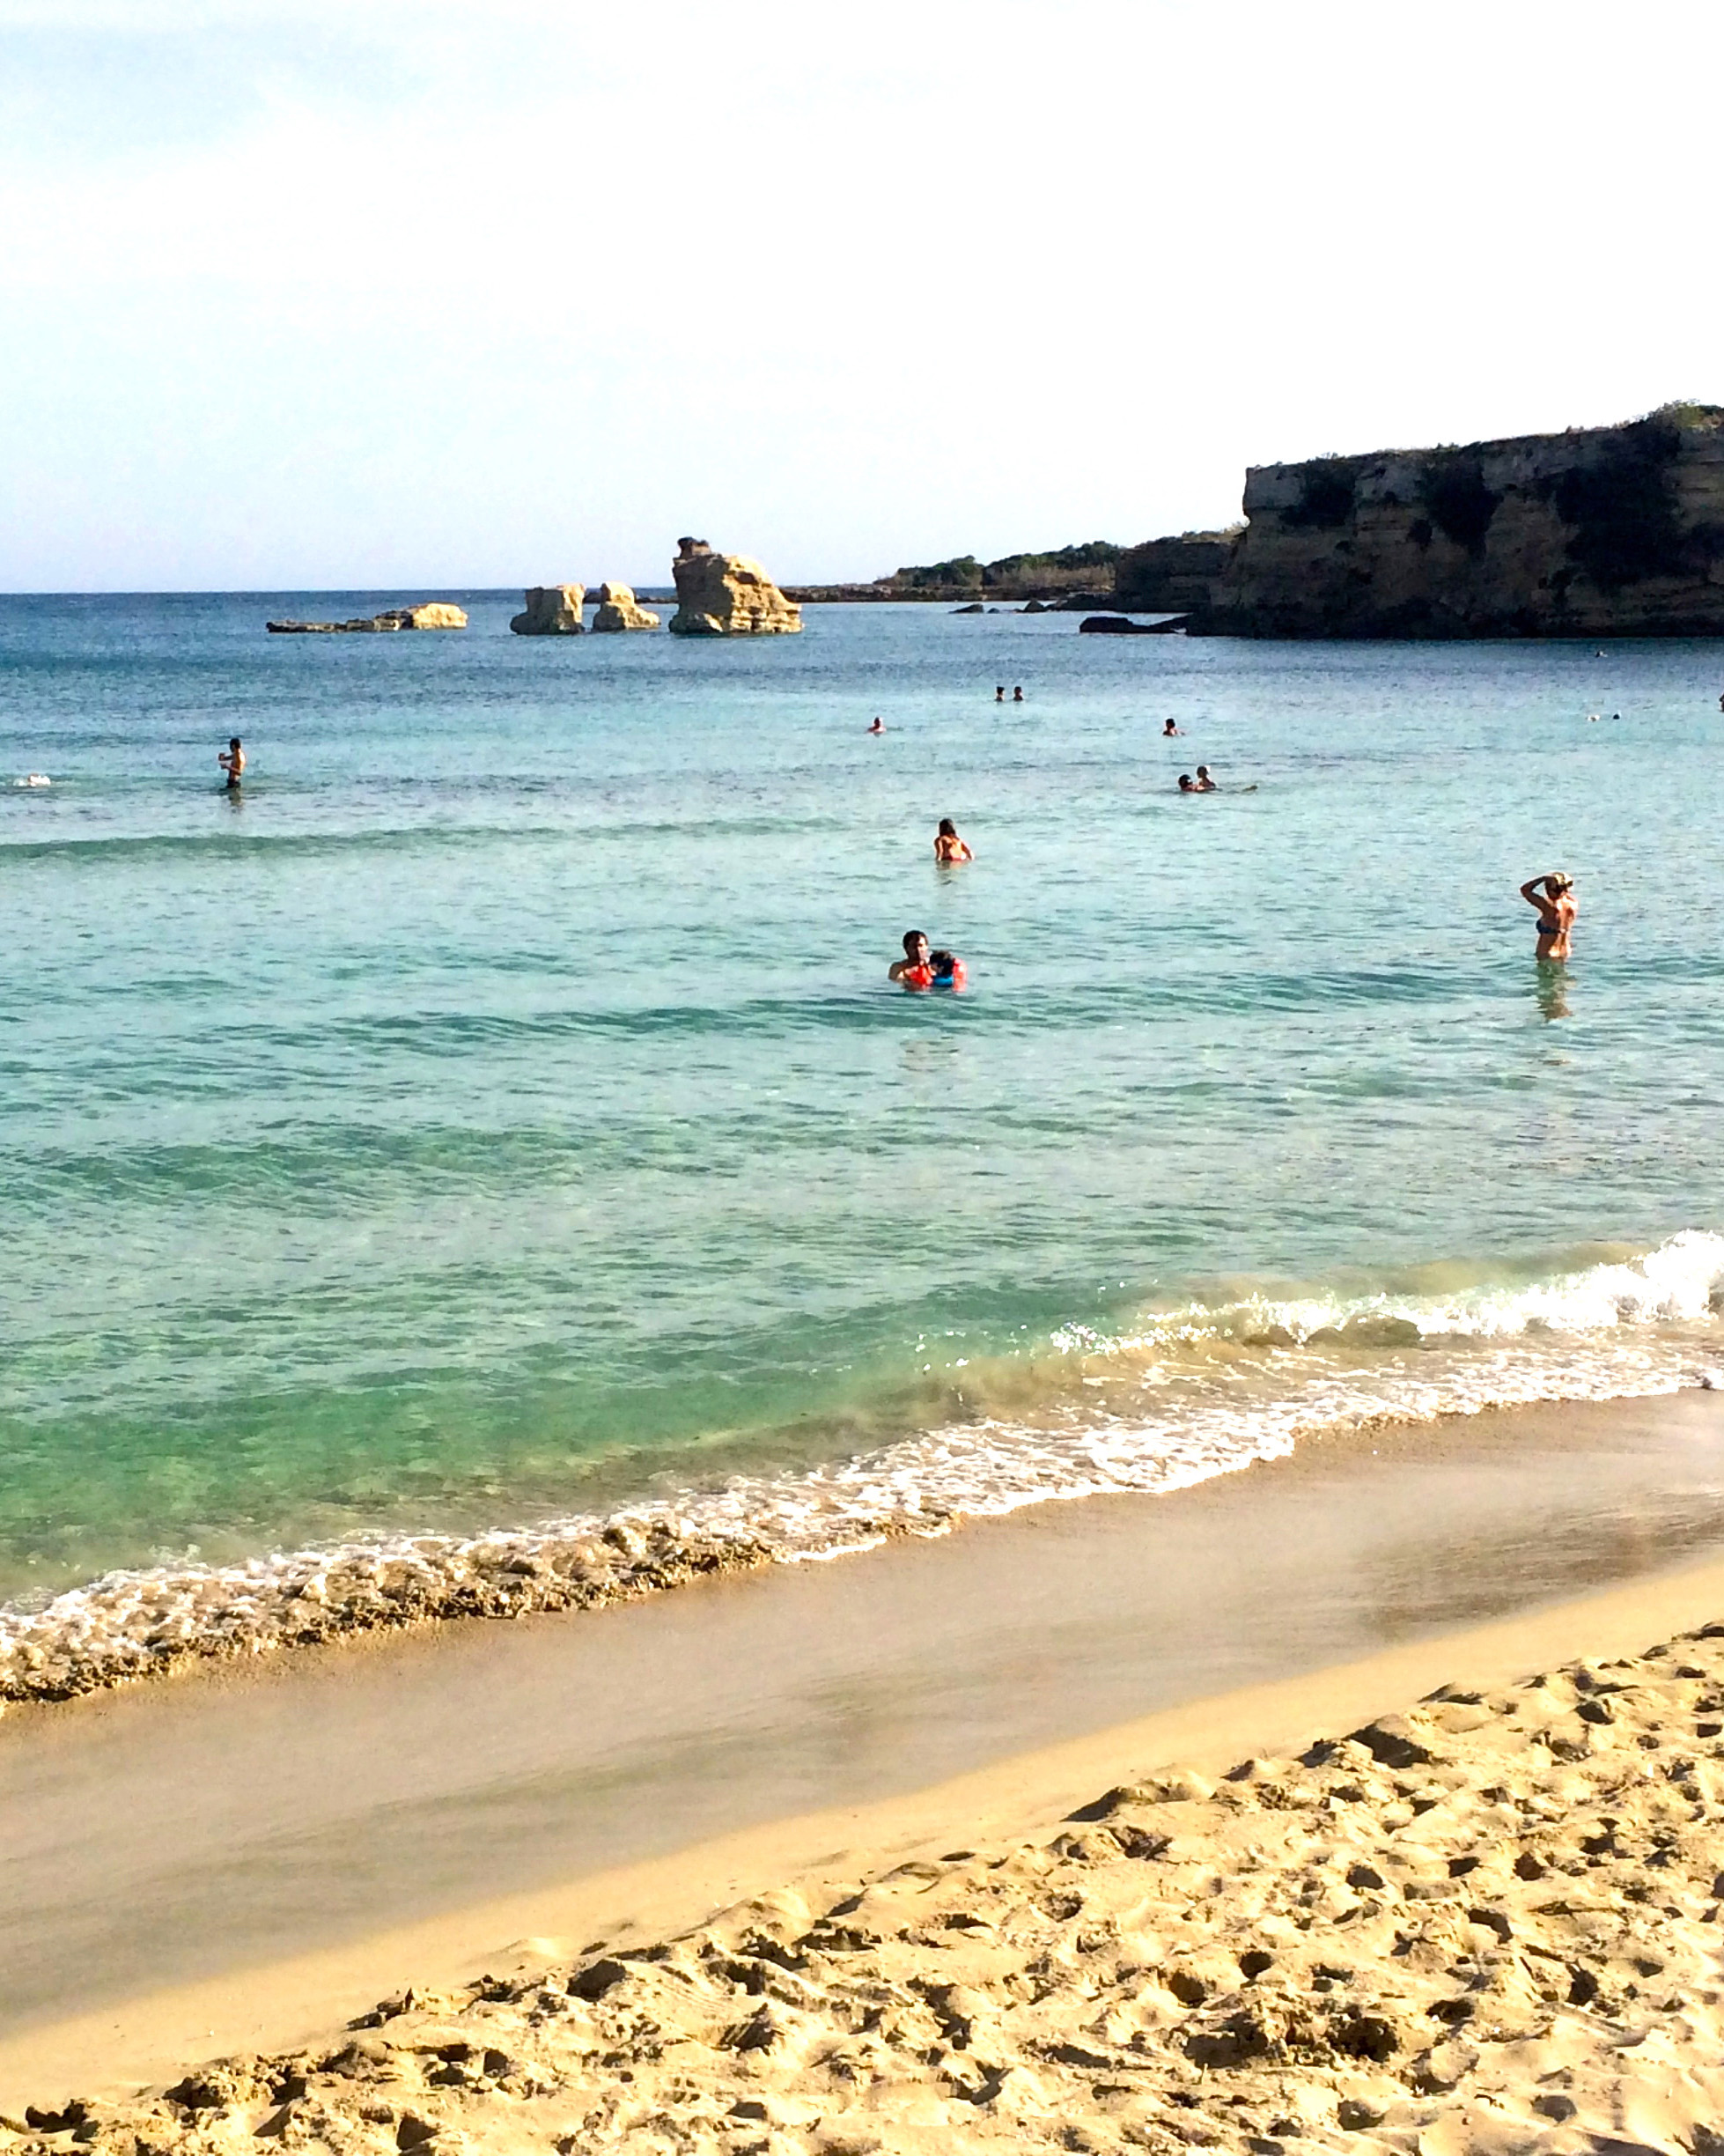 fontane-bianche-beach-sicily-with-yoga-escacpes 2_C